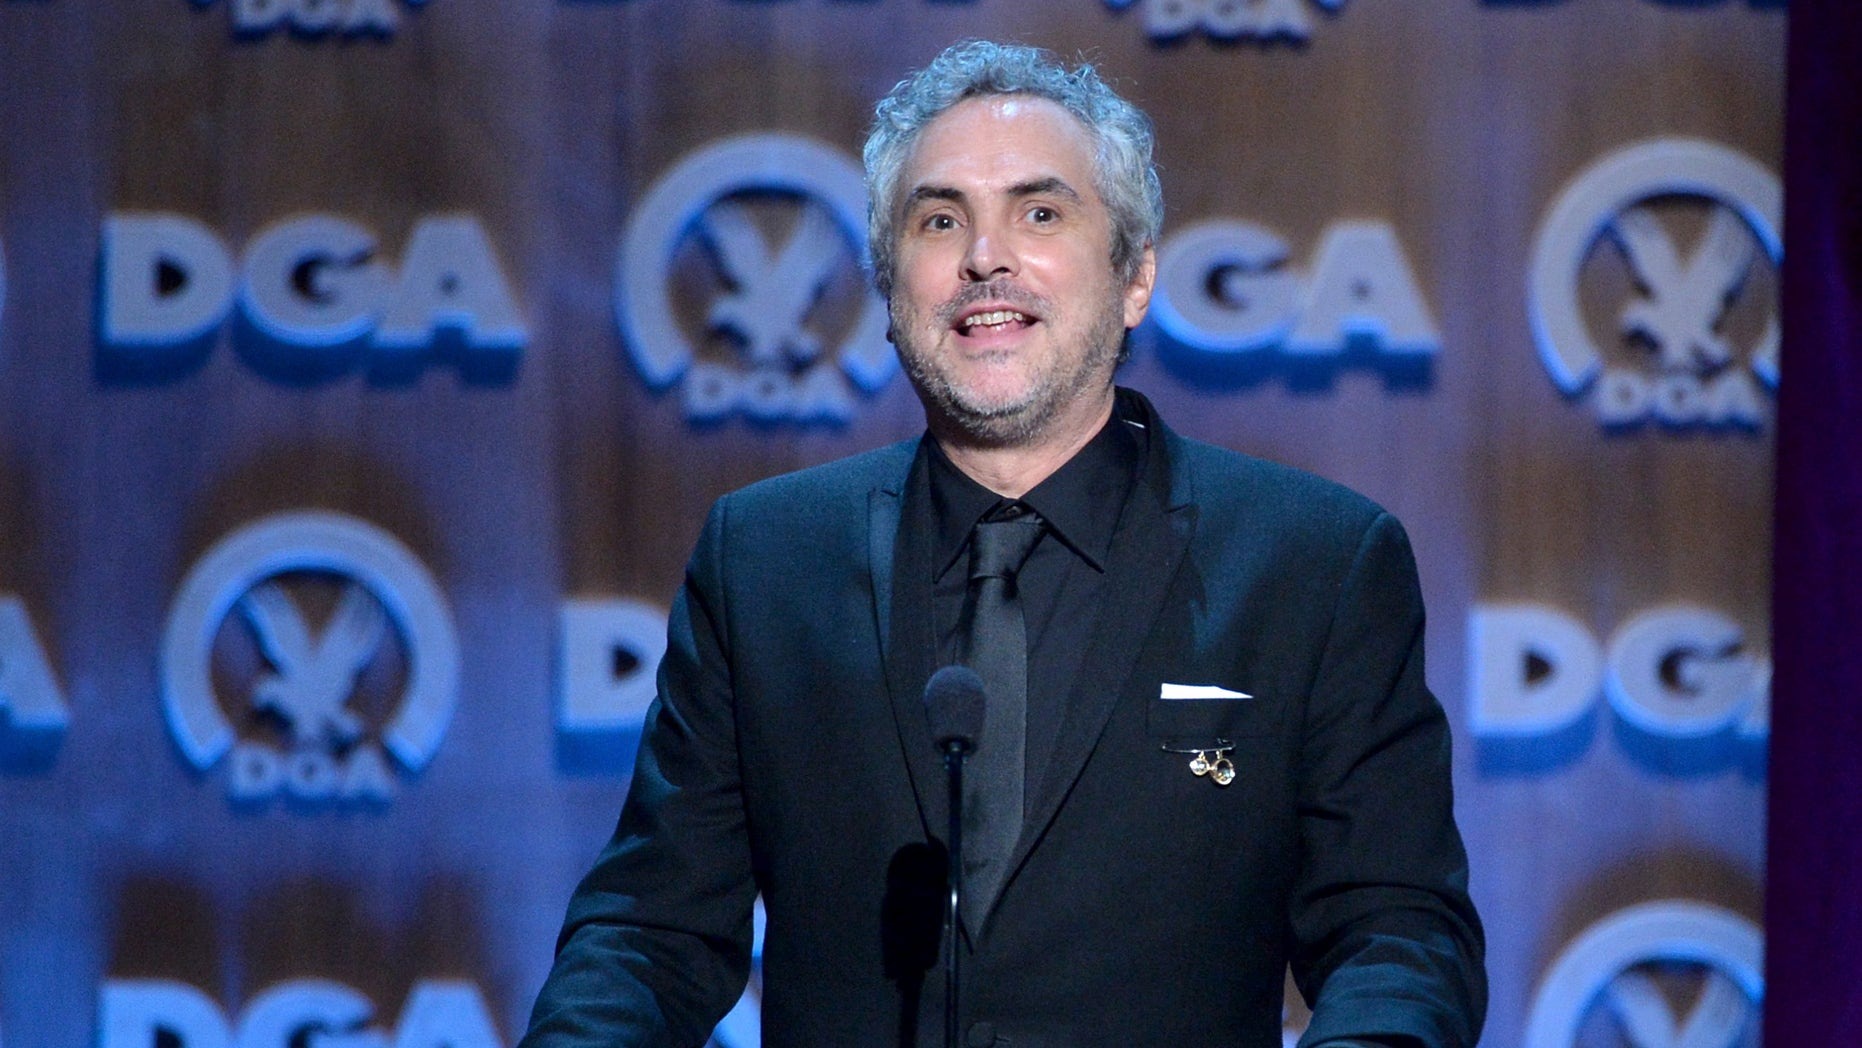 CENTURY CITY, CA - JANUARY 25:  Director Alfonso Cuaron accepts the Outstanding Directorial Achievement in Feature Film for 2013 award for ÂGravity onstage at the 66th Annual Directors Guild Of America Awards held at the Hyatt Regency Century Plaza on January 25, 2014 in Century City, California.  (Photo by Alberto E. Rodriguez/Getty Images for DGA)